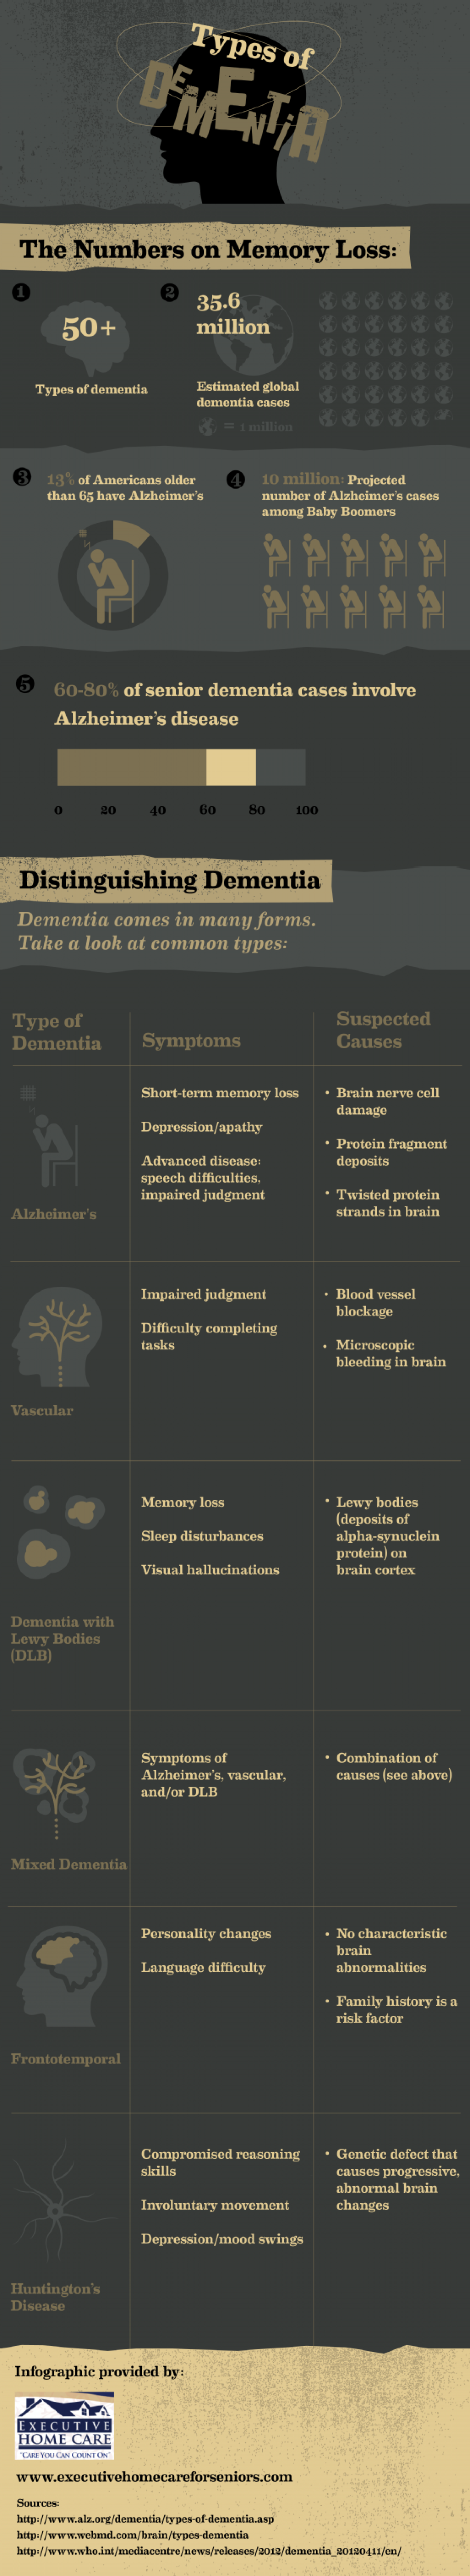 Types of Dementia Infographic